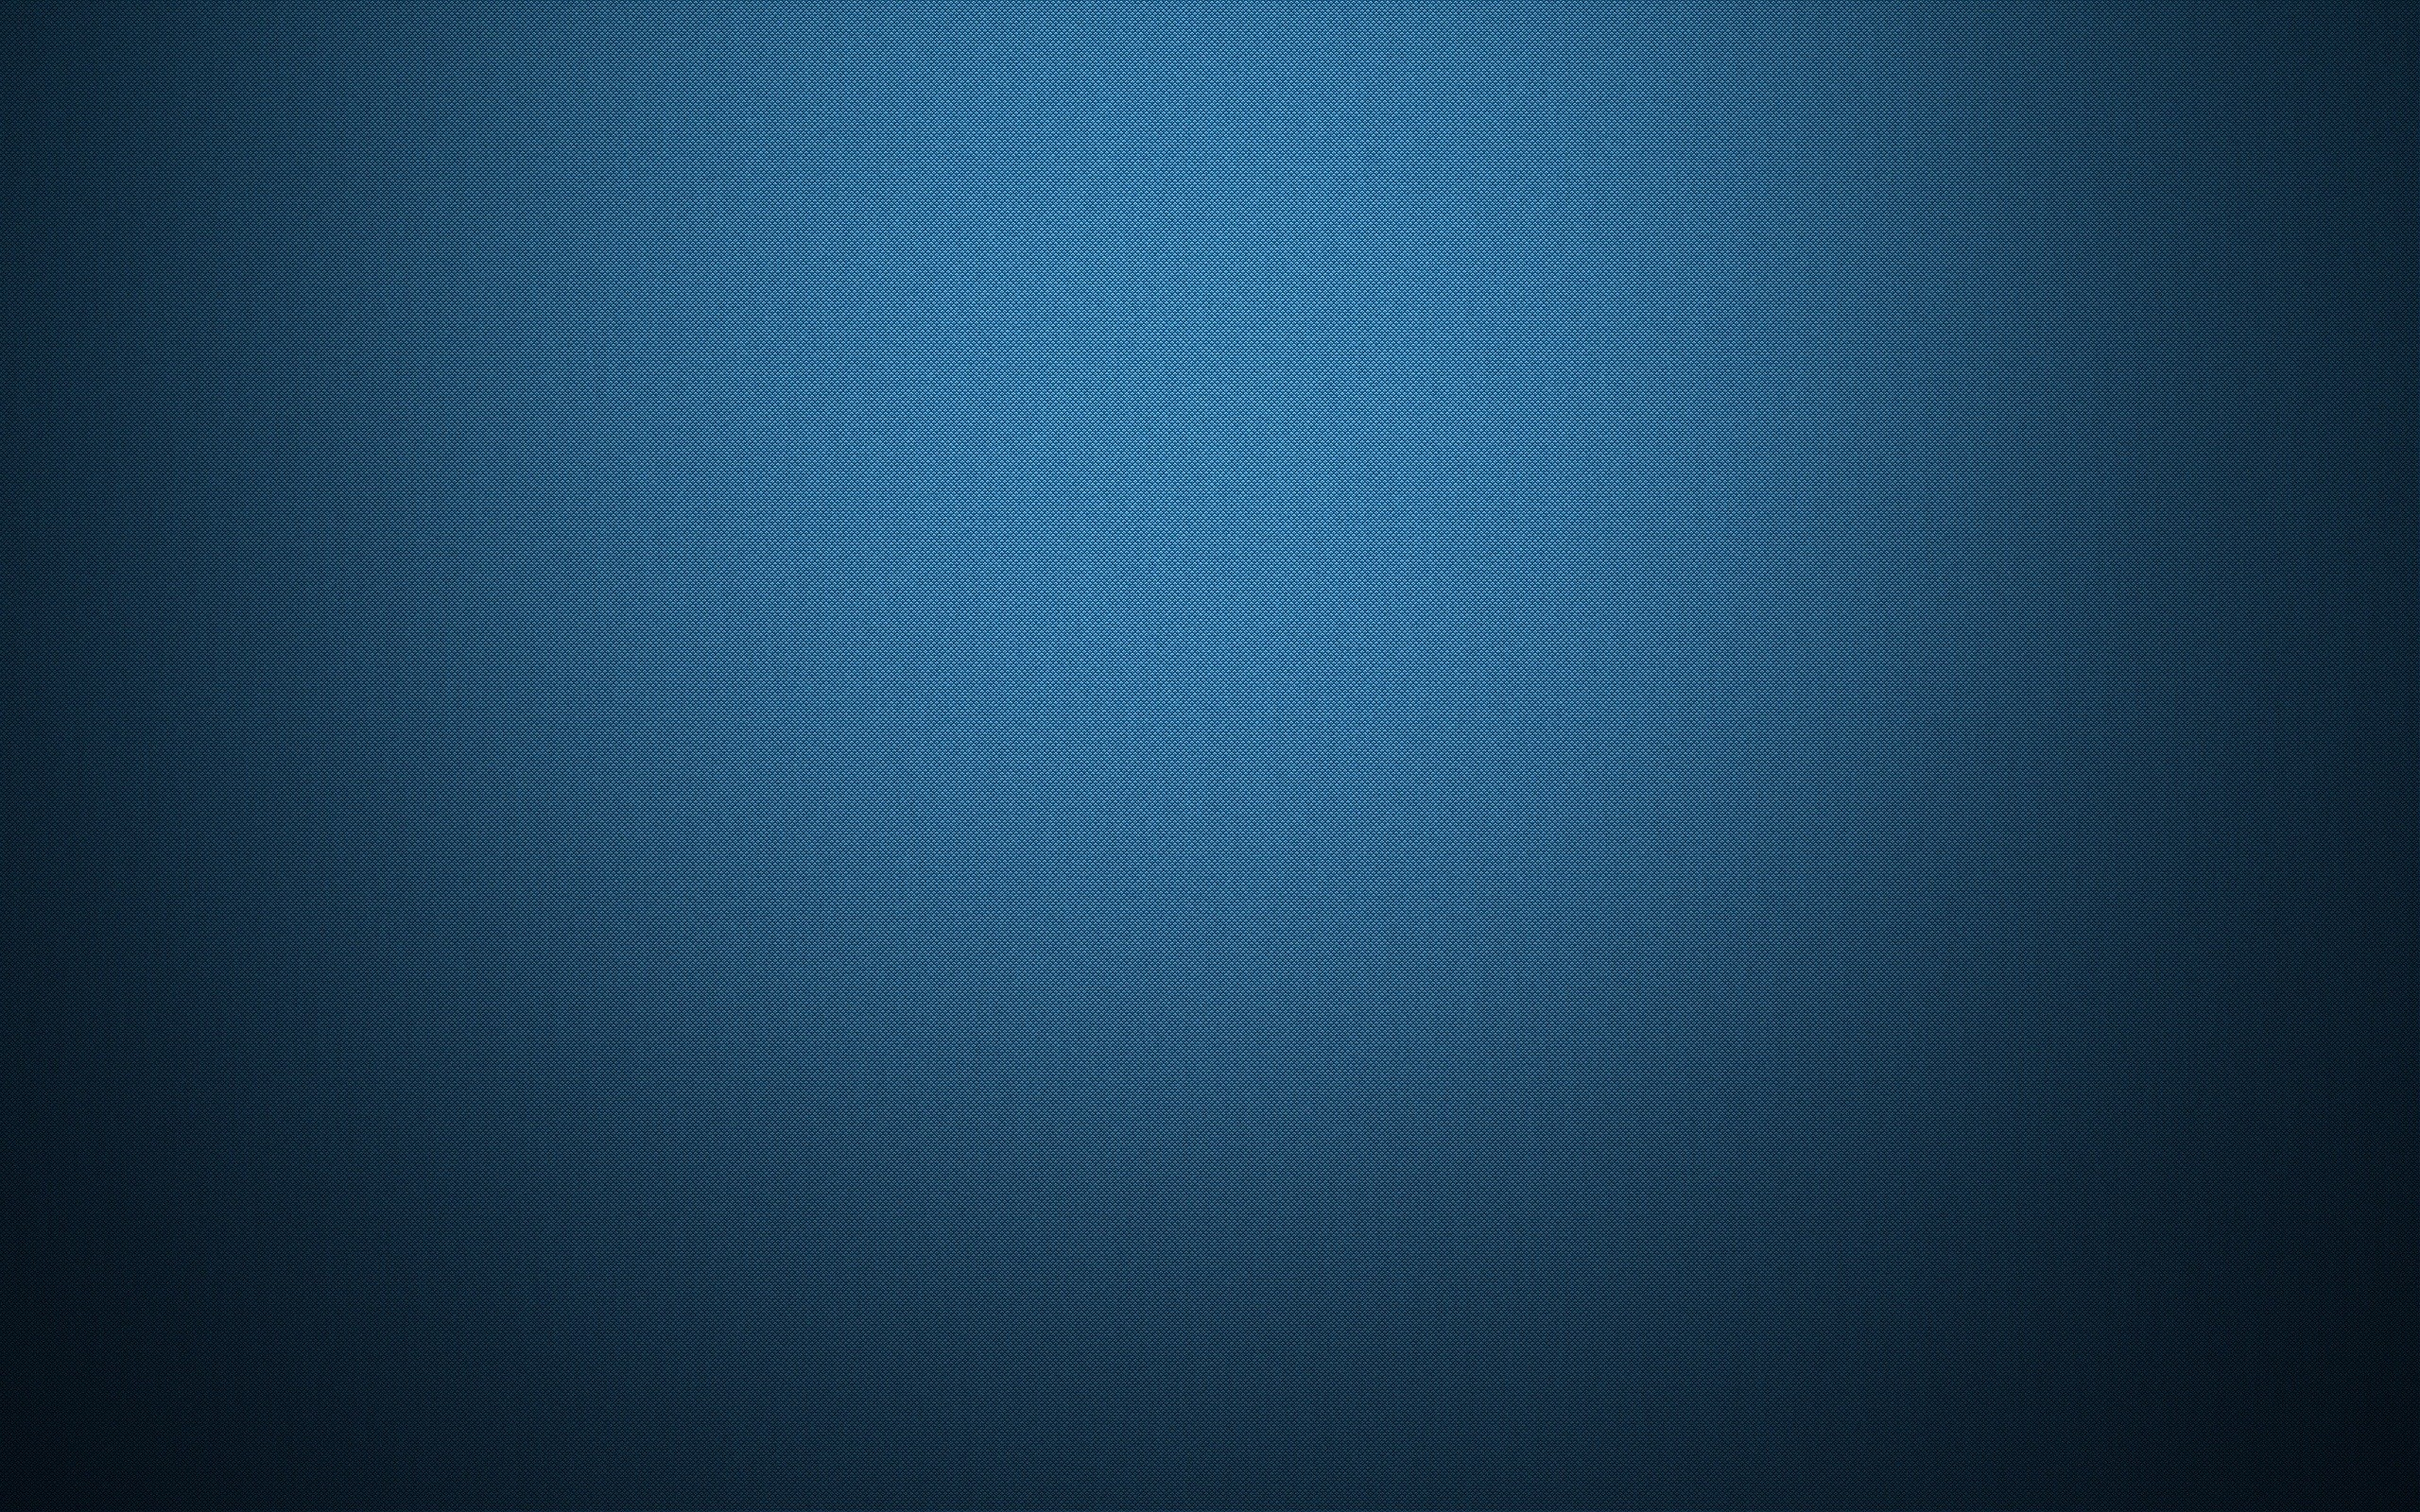 Blue Grey Textured Background | www.imgkid.com - The Image ...